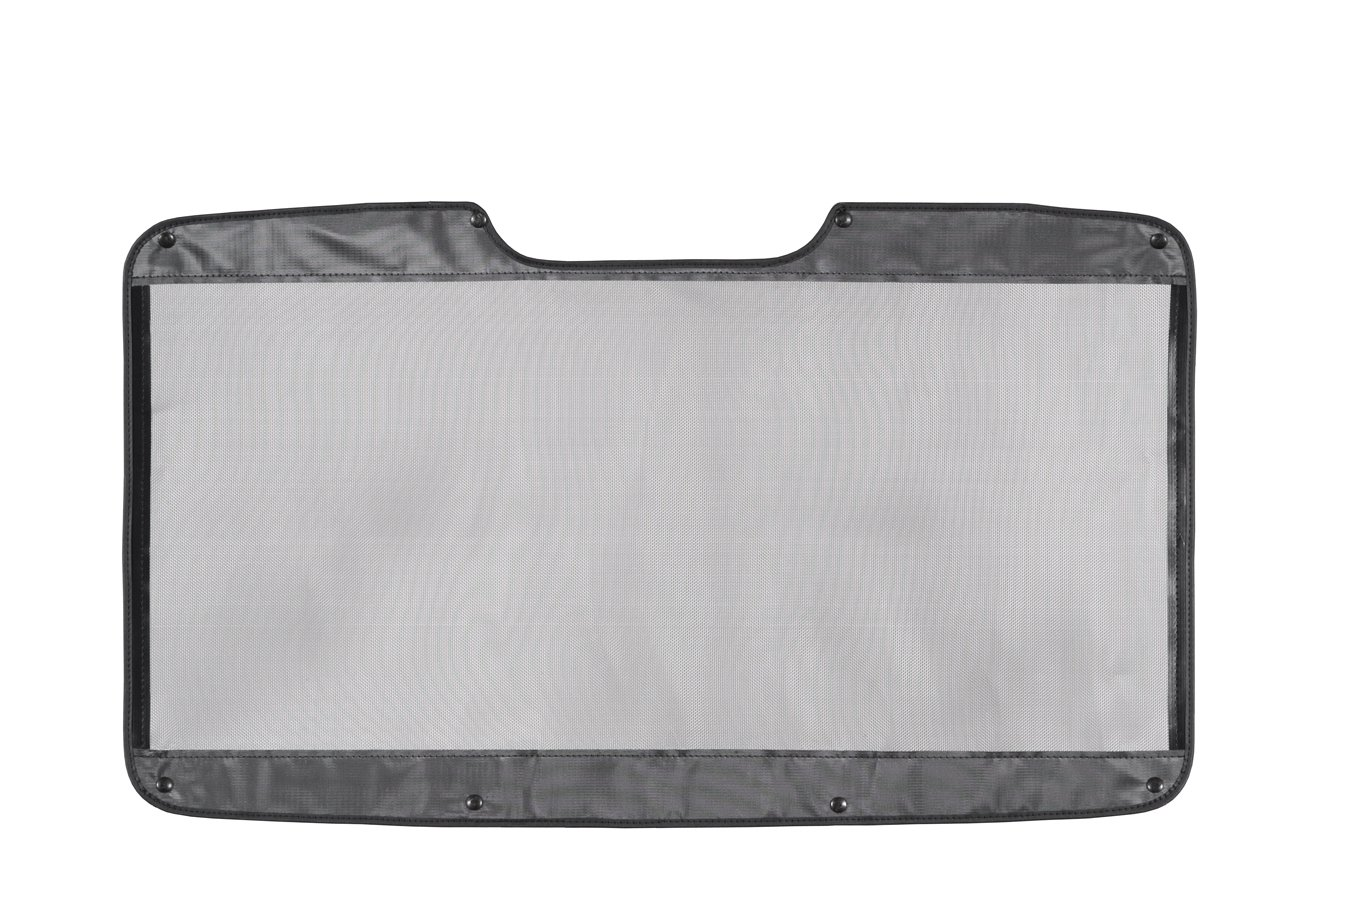 Does Not Fit OE Studs Belmor BS-2164-1 Black Bug Screen Truck Grille Cover for 2003-2009 Freightliner Coronado